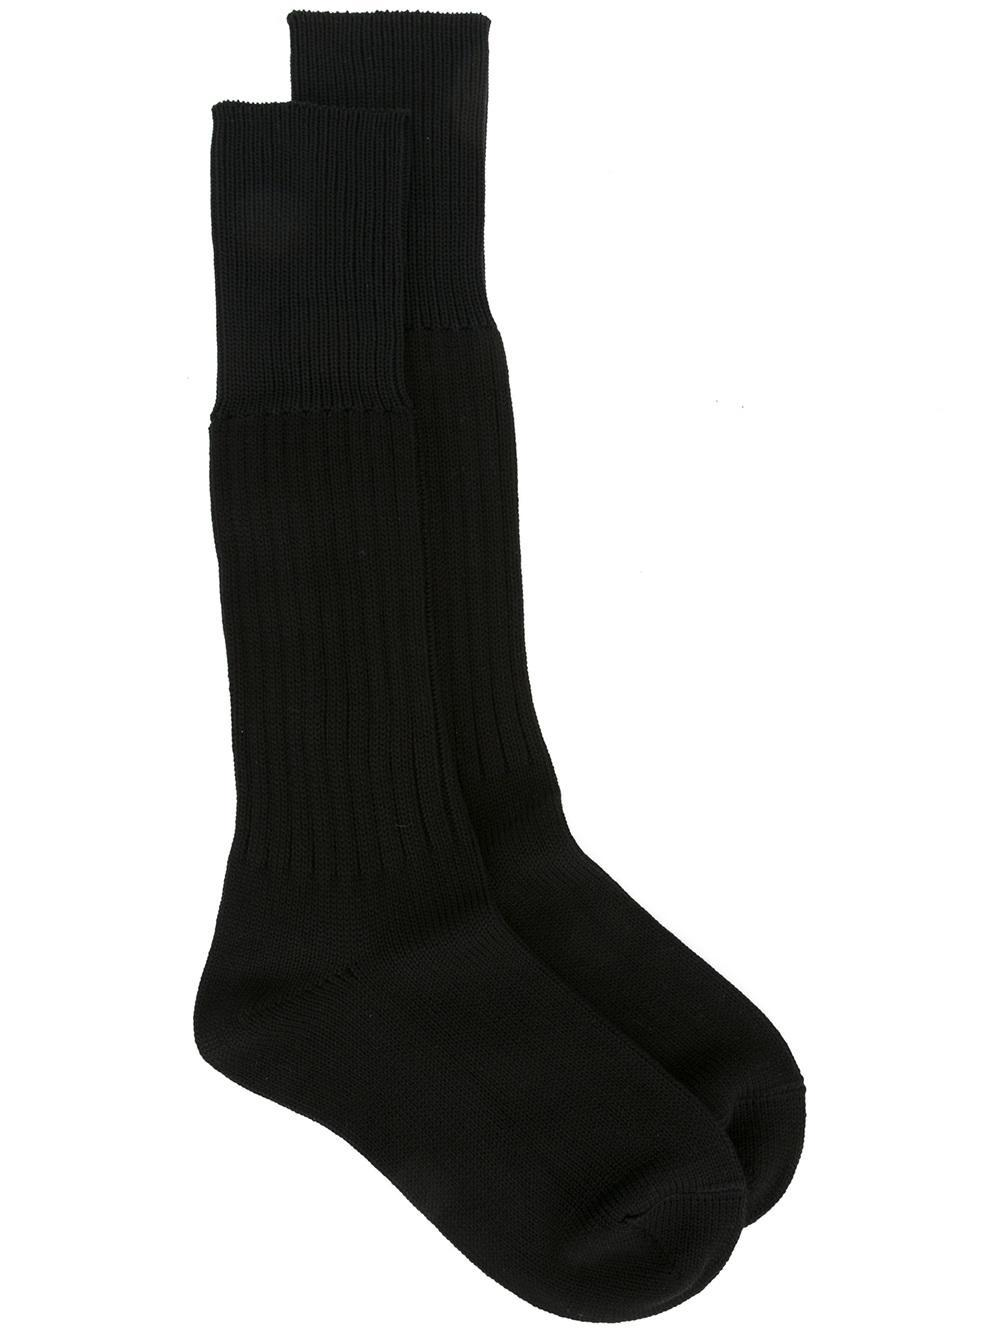 Shop for mens black ankle socks online at Target. Free shipping on purchases over $35 and save 5% every day with your Target REDcard.